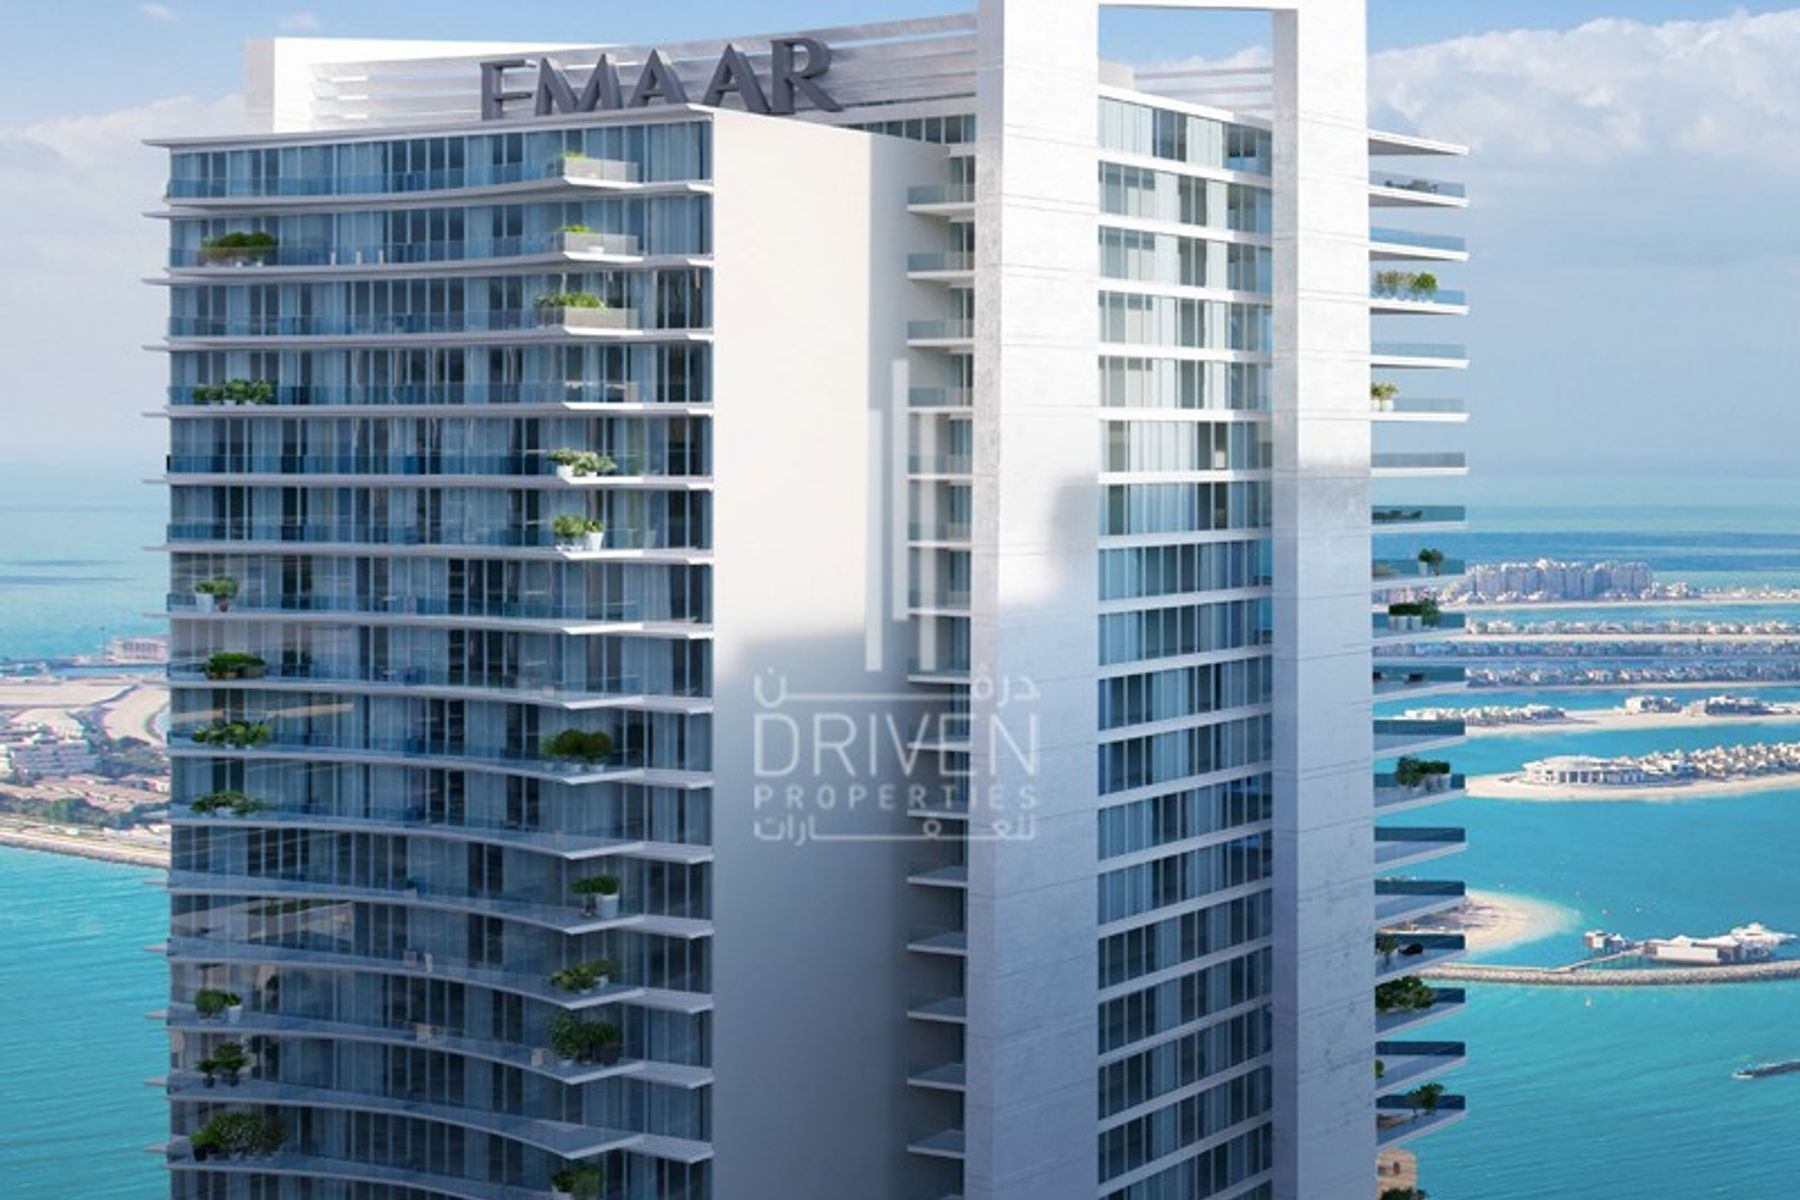 1 BR | FULL MARINA VIEWS | 0% COMMISSION